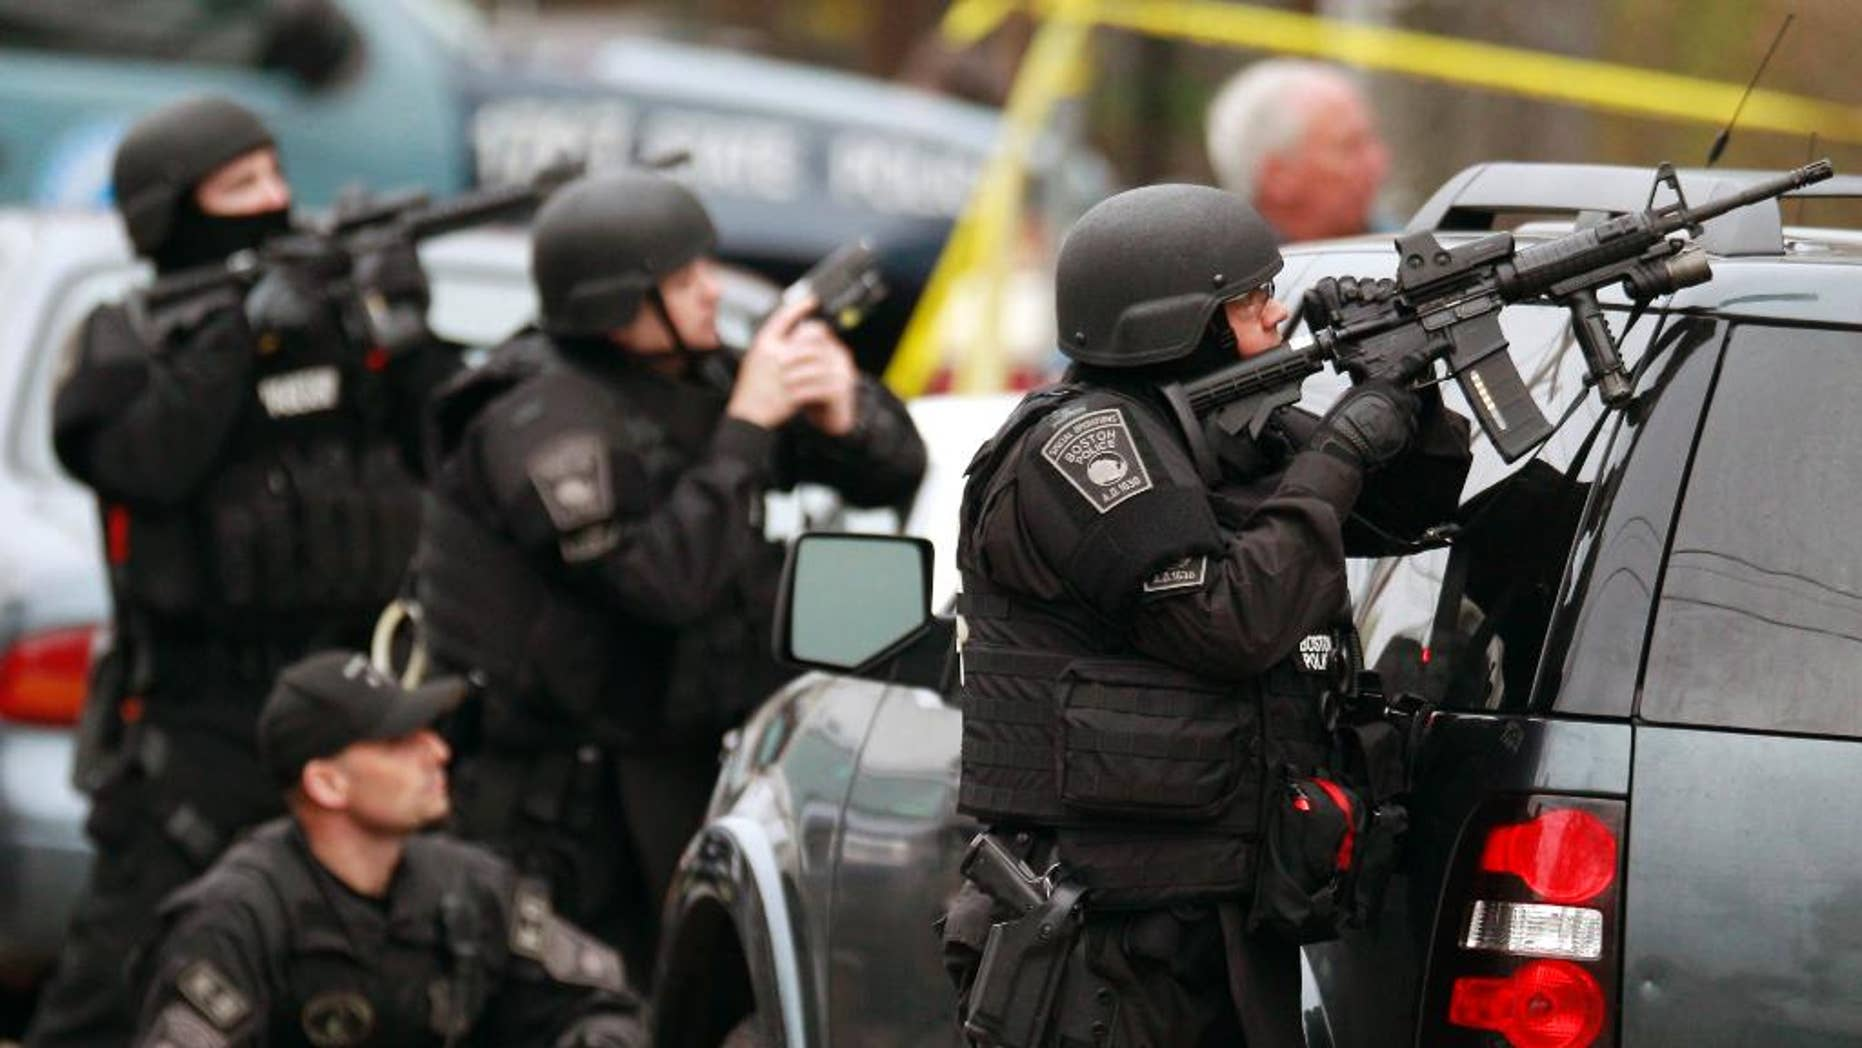 FILE - In this April 19, 2013 file photo, police in tactical gear surround an apartment building while looking for a suspect in the Boston Marathon bombings in Watertown, Mass. A Harvard University report released Thursday, April 3, 2014, on the response to the bombings was largely positive, but criticized law enforcement for the chaotic gunfight in which one suspect was killed and a police officer seriously injured, because it lacked coordination.  (AP Photo/Charles Krupa, File)